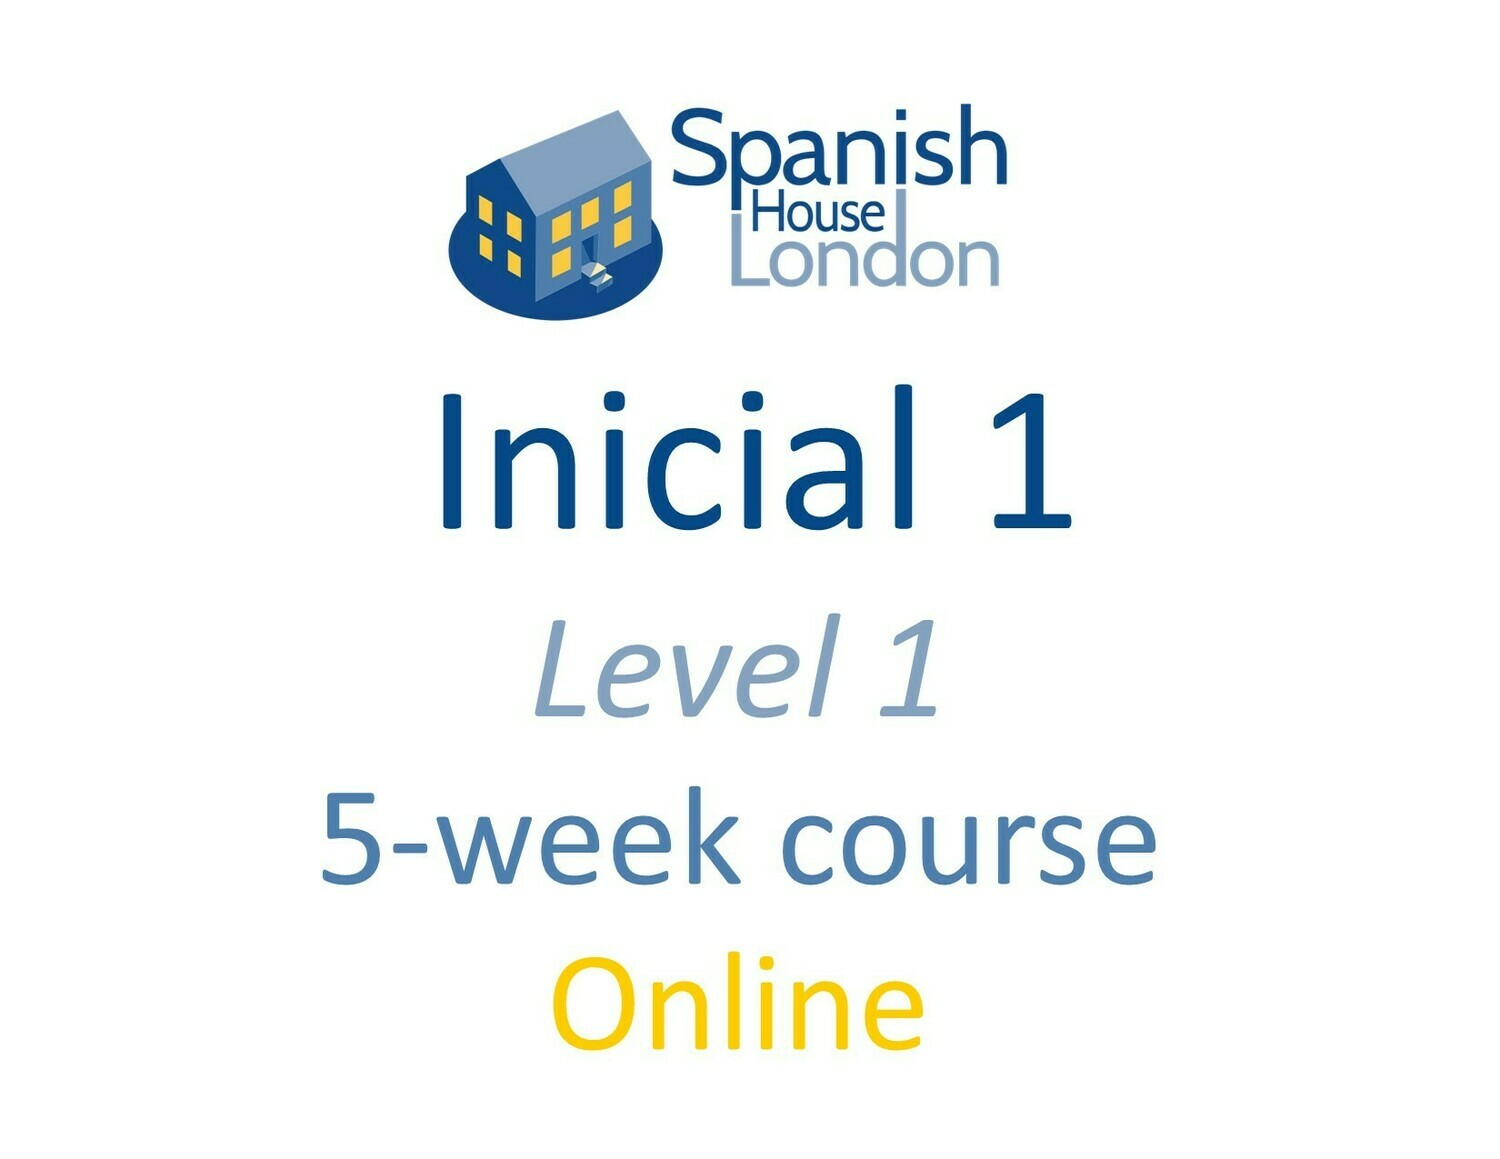 Five-Week Intensive Inicial 1 Course starting on 10th May at 7.30pm